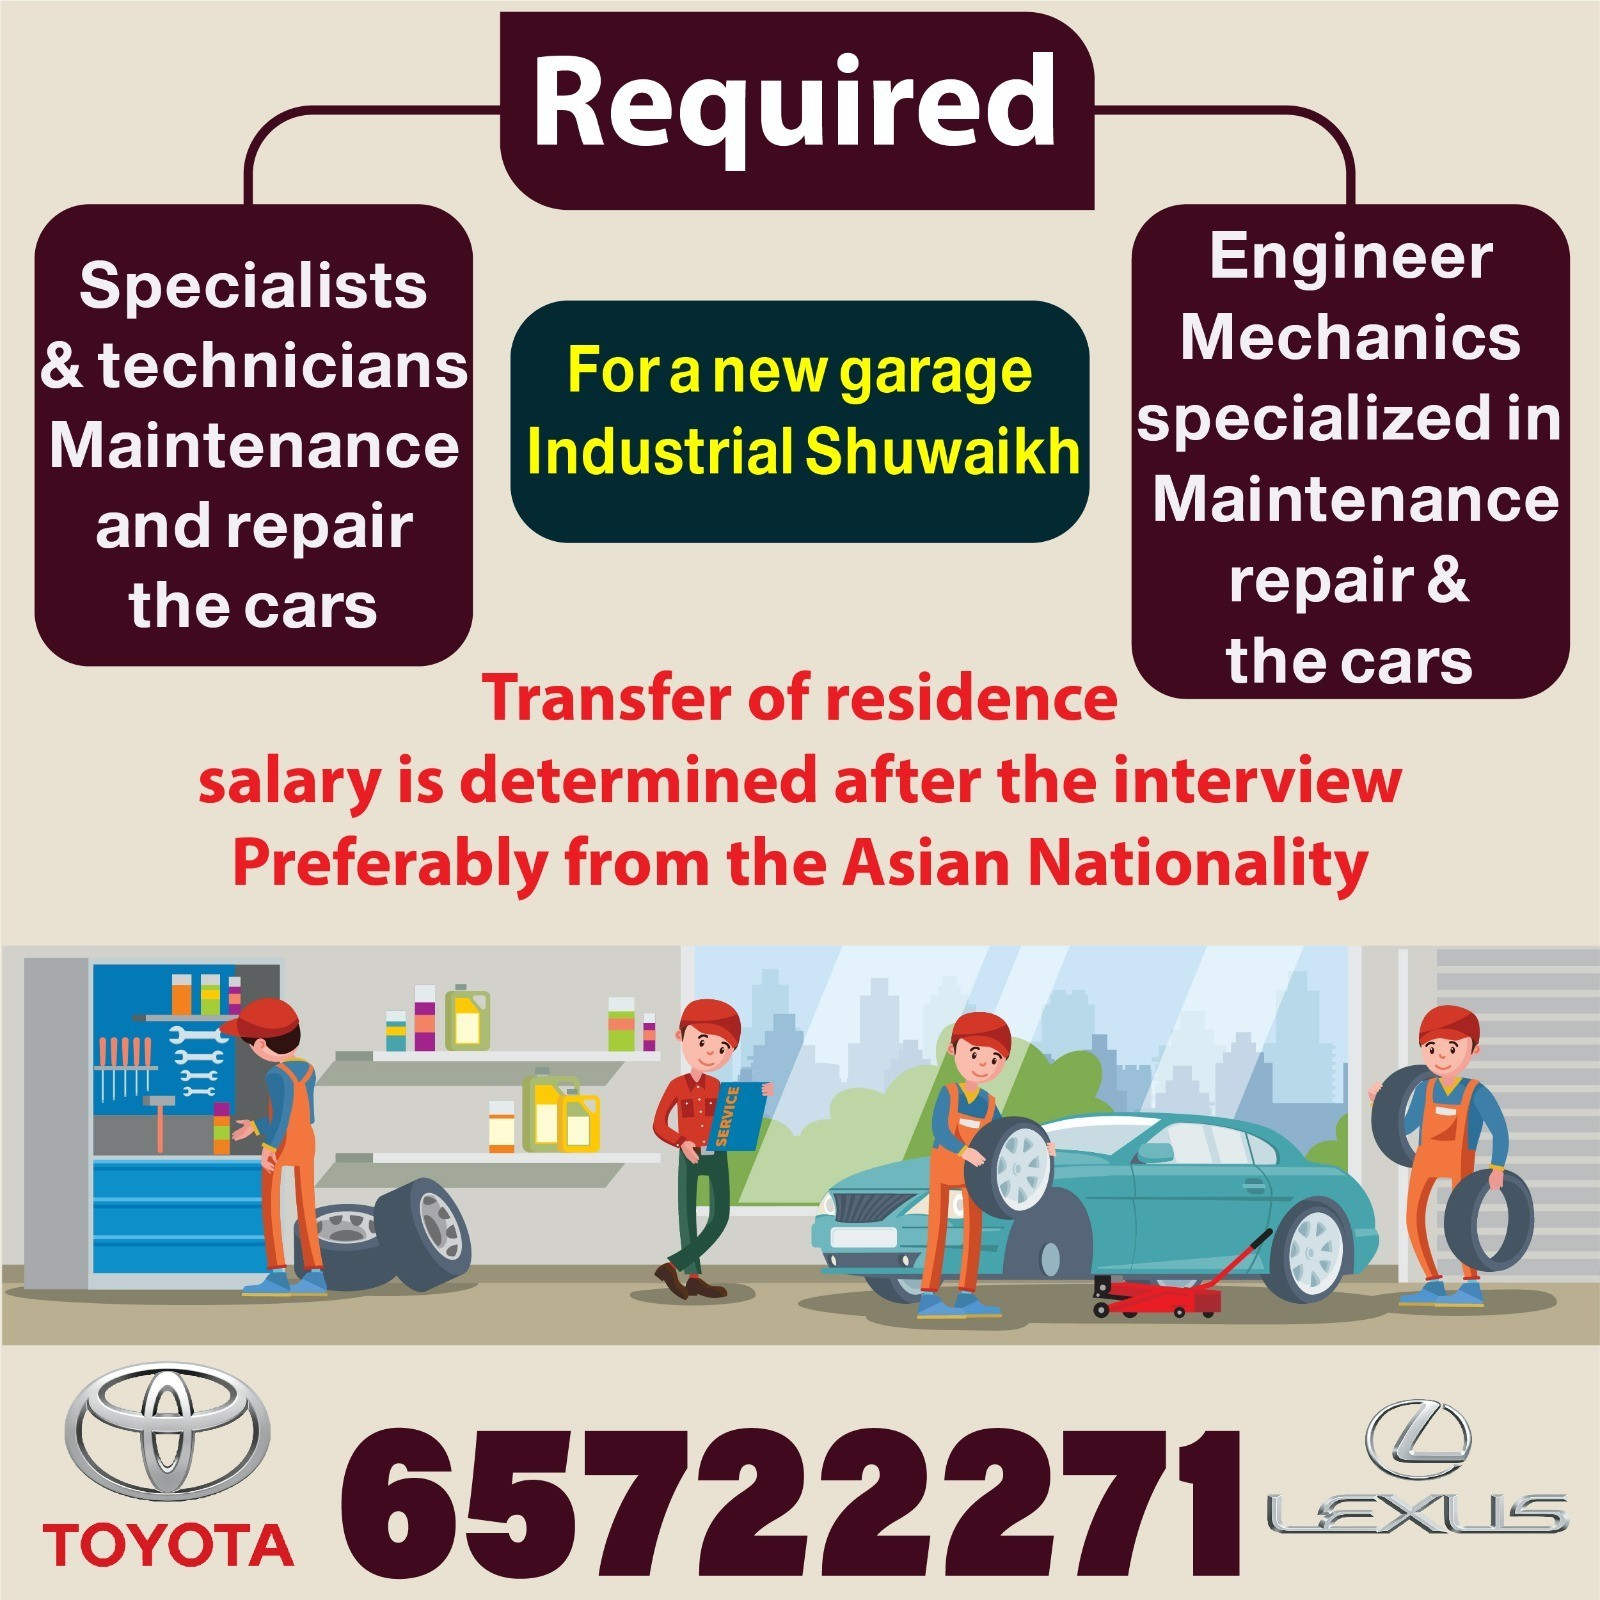 required engineer mechanics specialized in maintenance repair & the cars